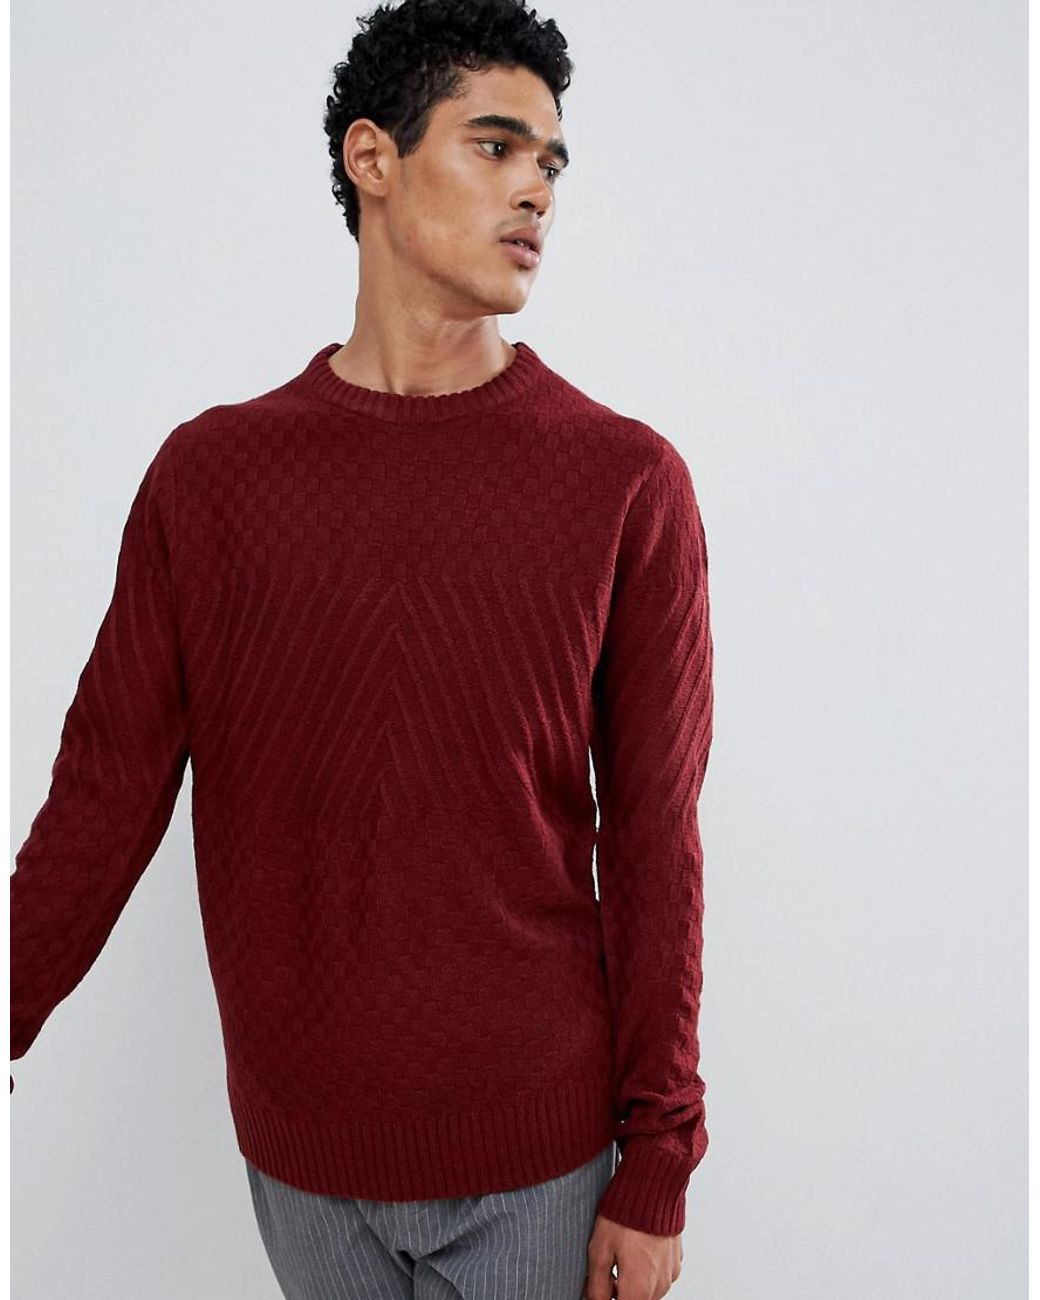 Tokyo Laundry Mens Crew Neck Jumper Wool Blend Acrylic Knitted Stripe Pullover